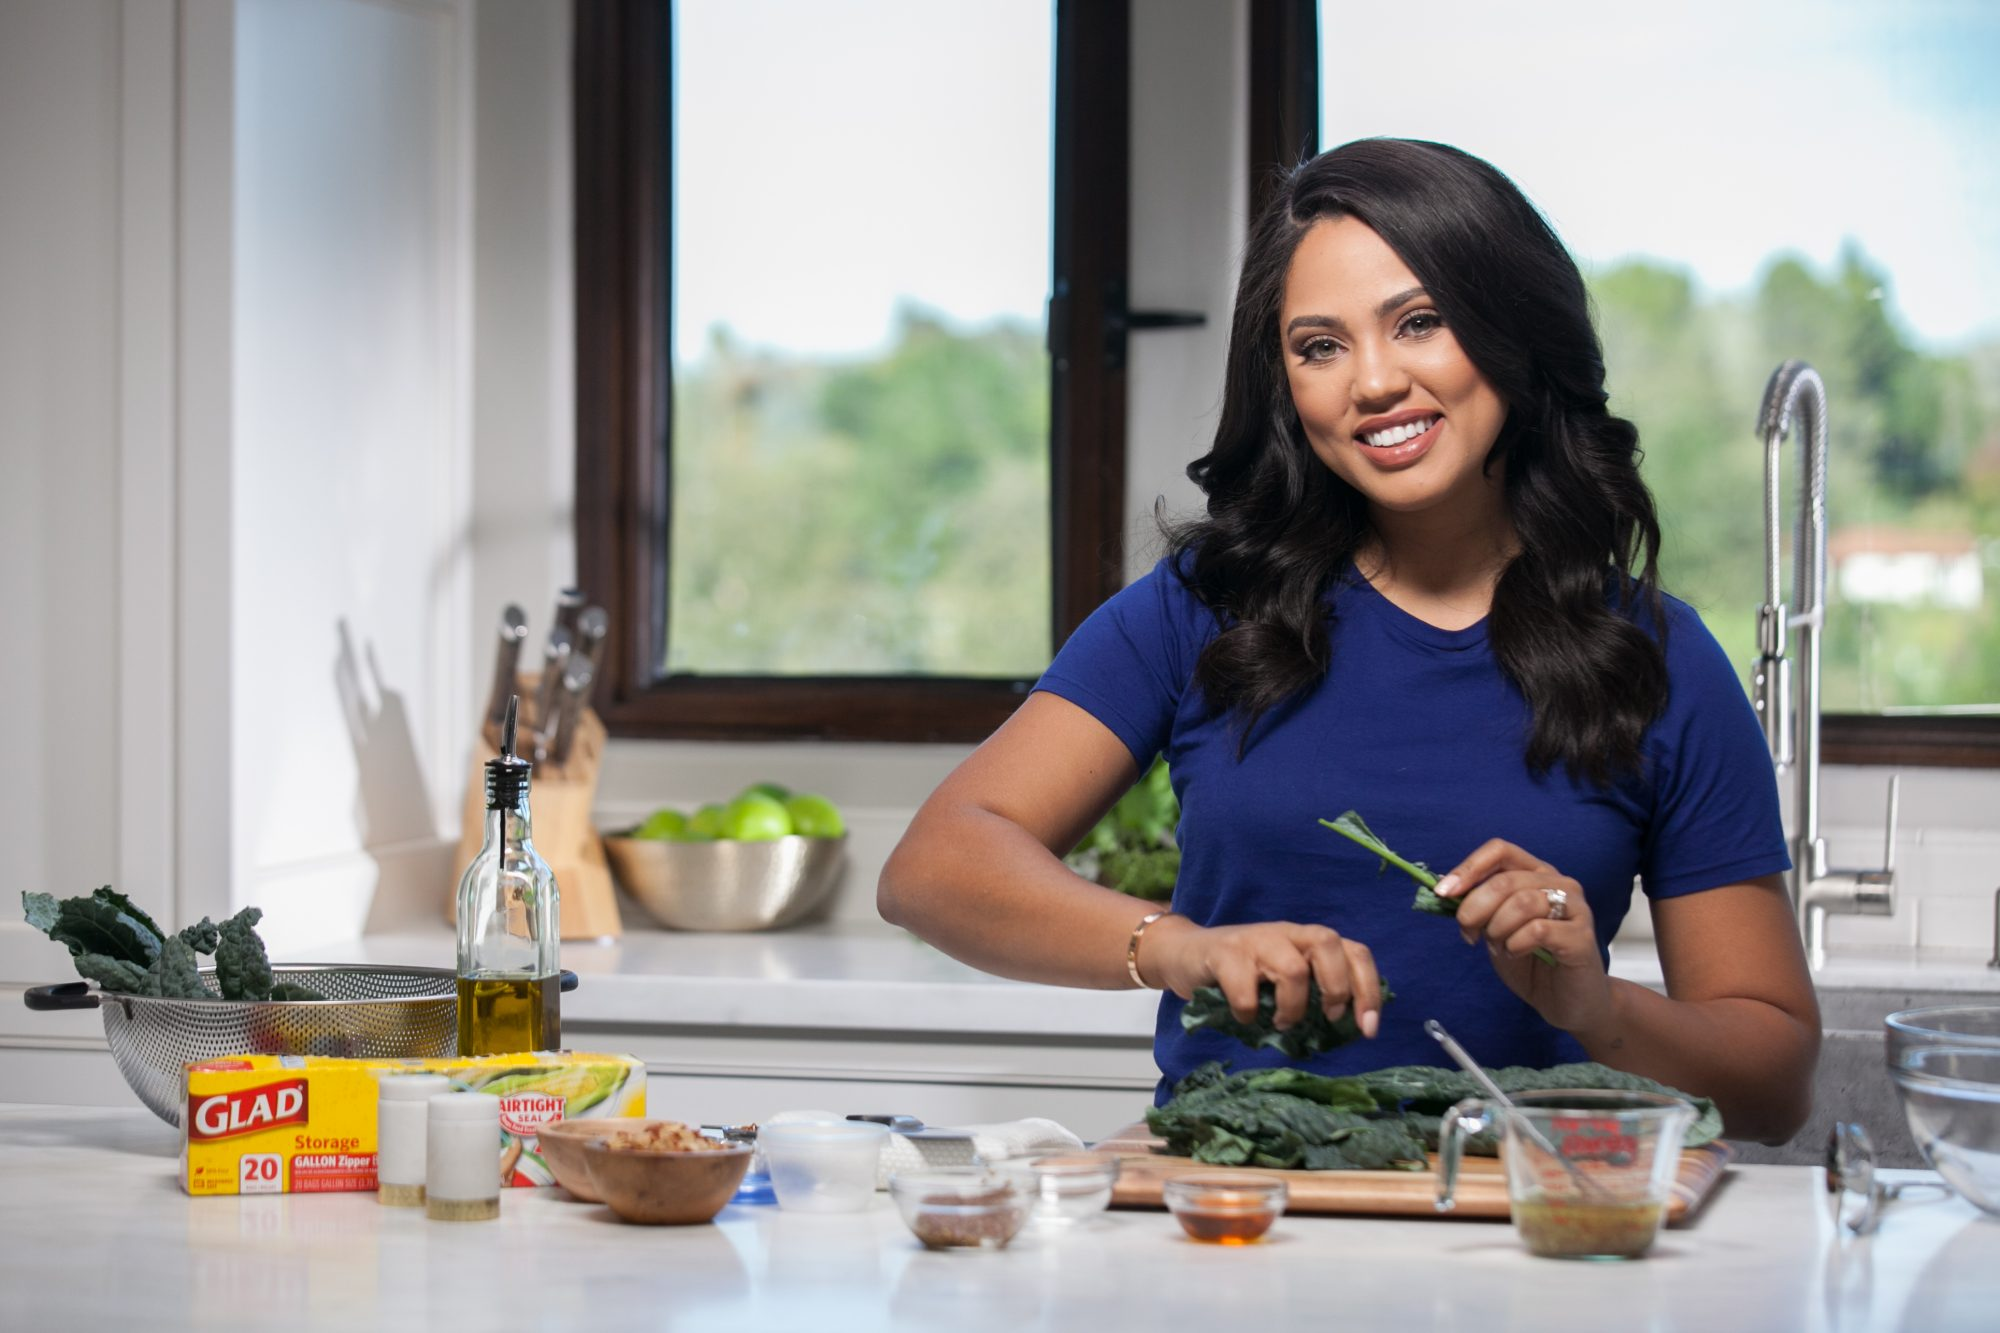 We Talked To Ayesha Curry About Her New Meal Kit Delivery Service, Homemade